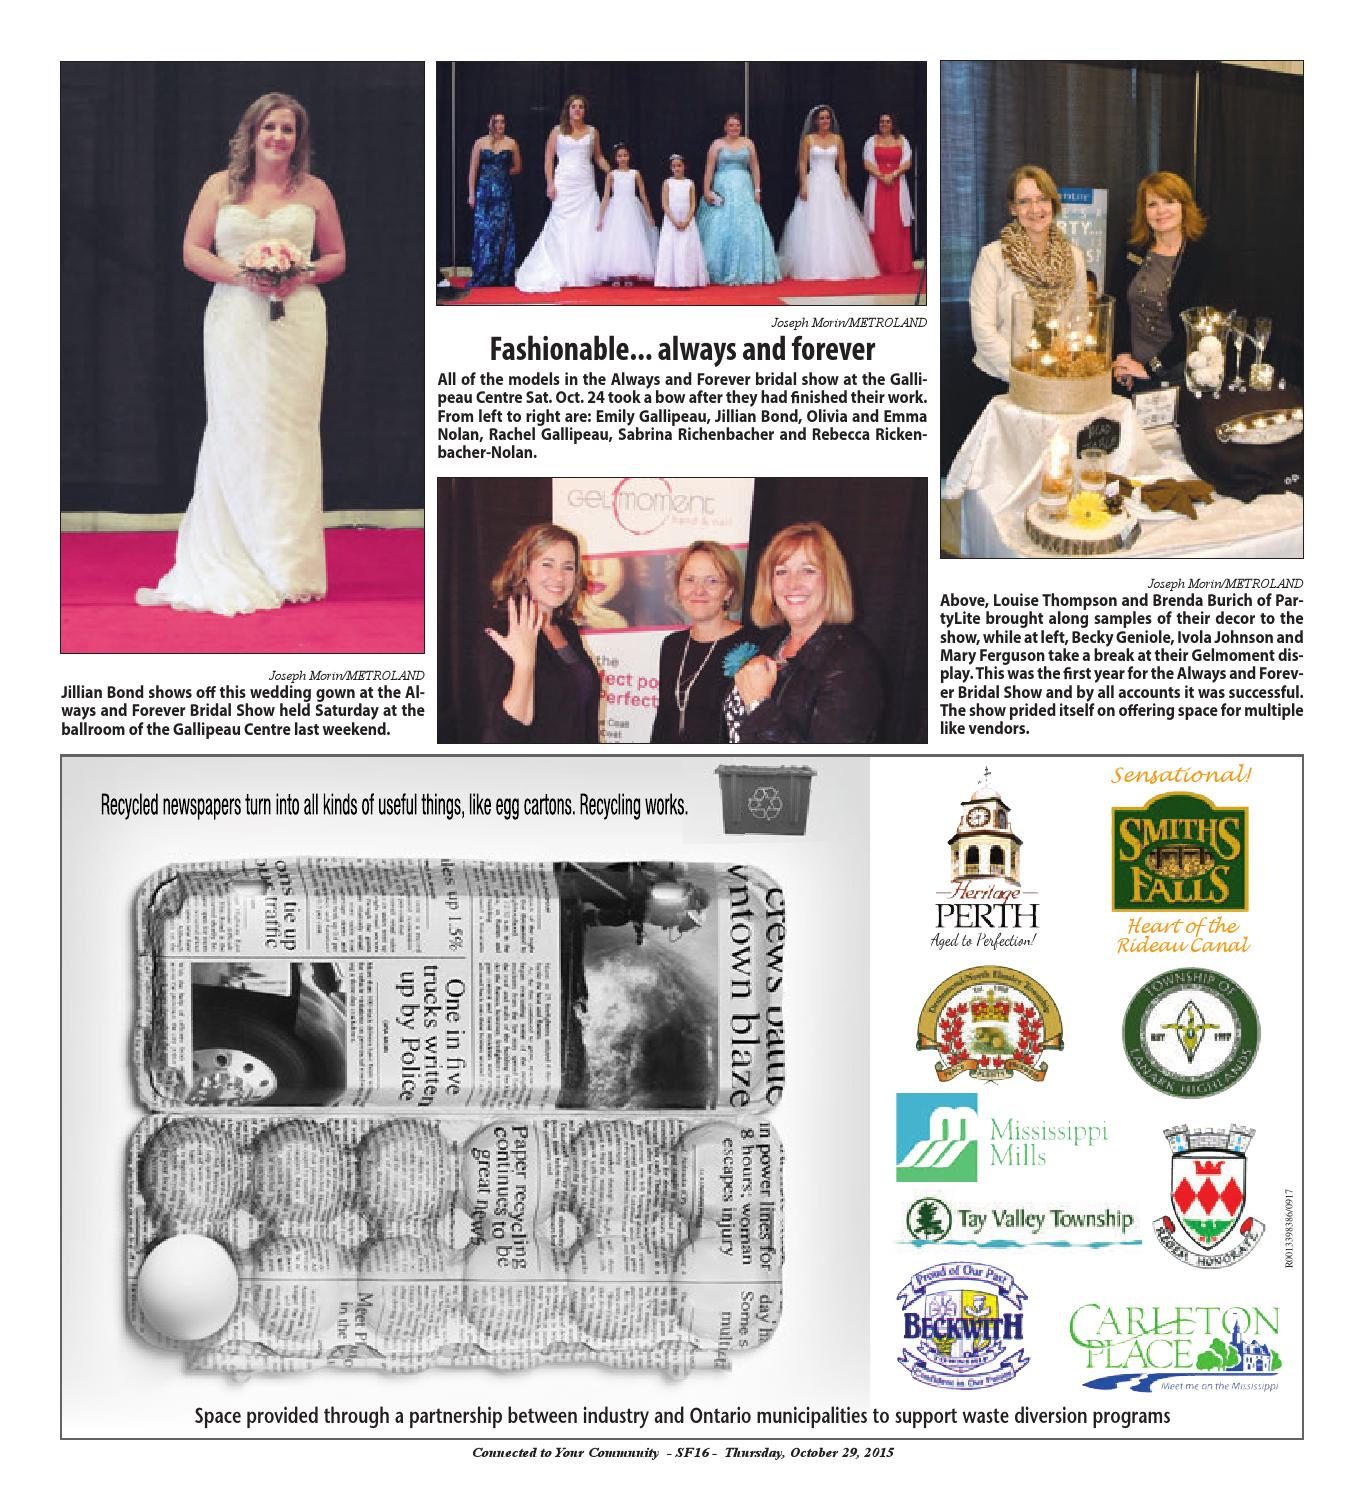 Smithsfalls102915 by Metroland East - Smiths Falls Record News - issuu